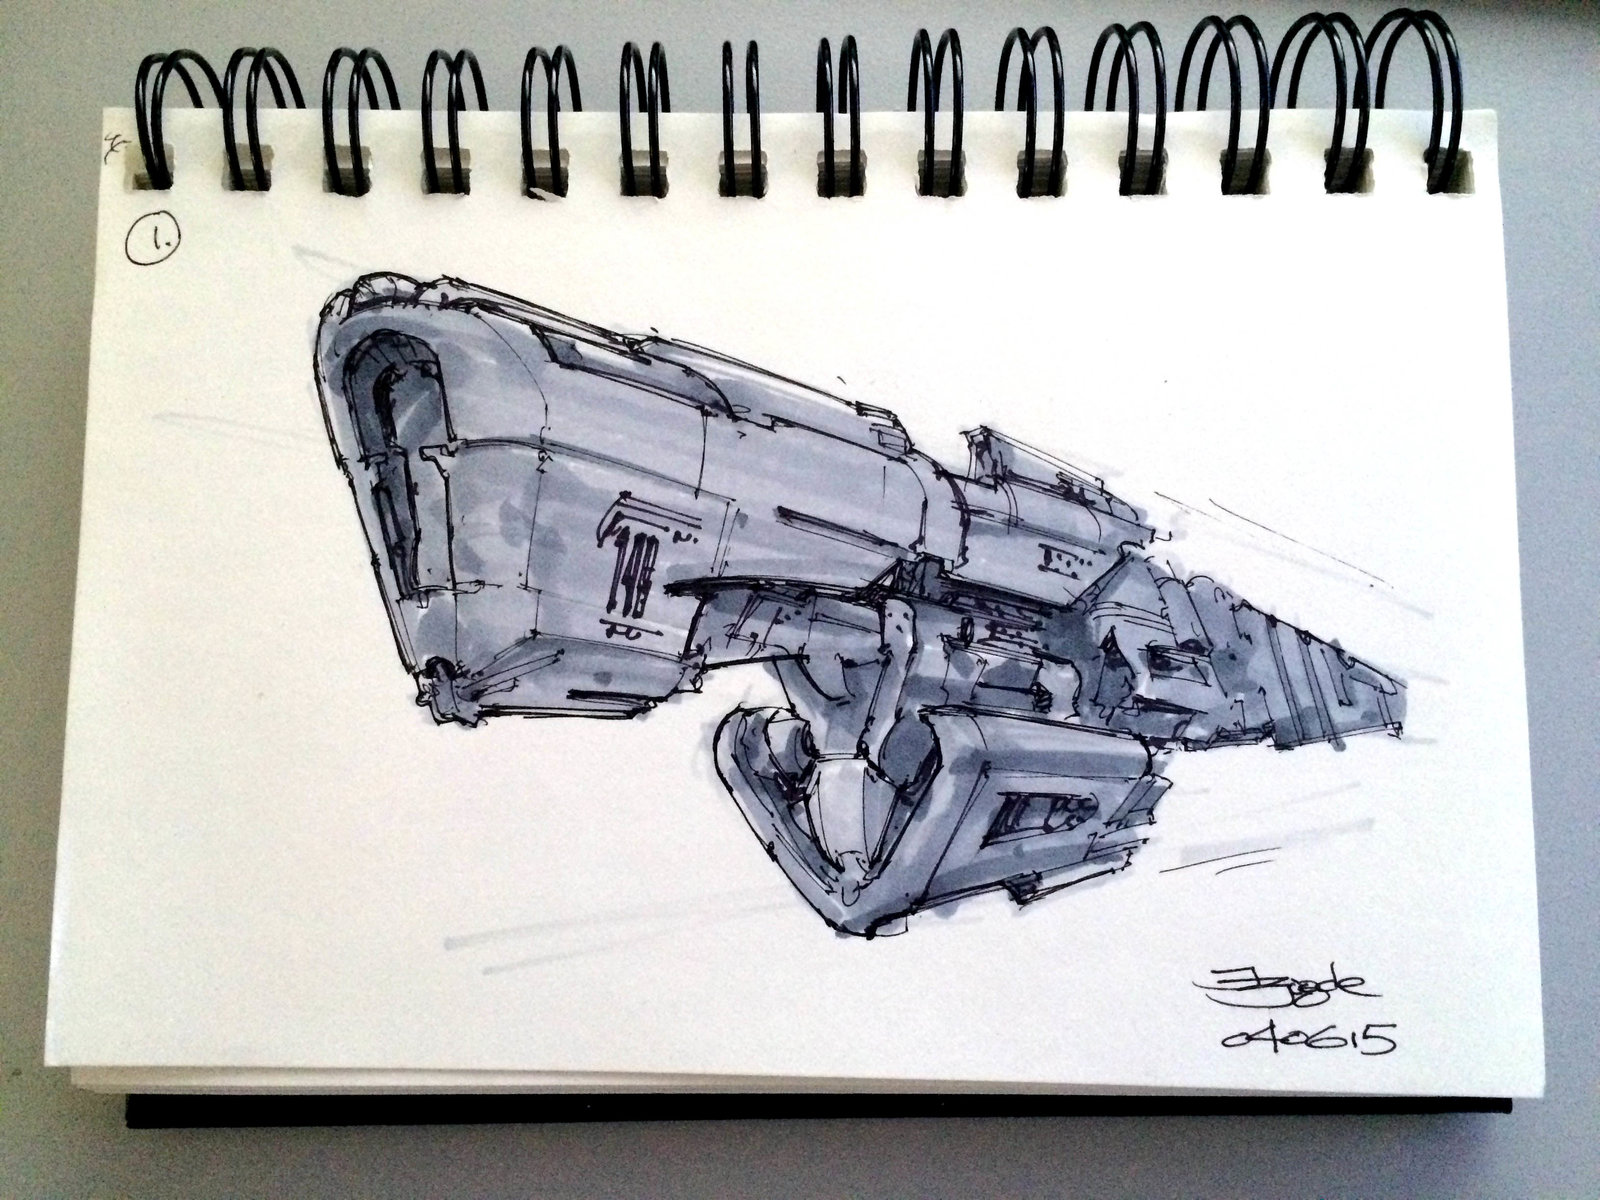 SpaceshipADay 001